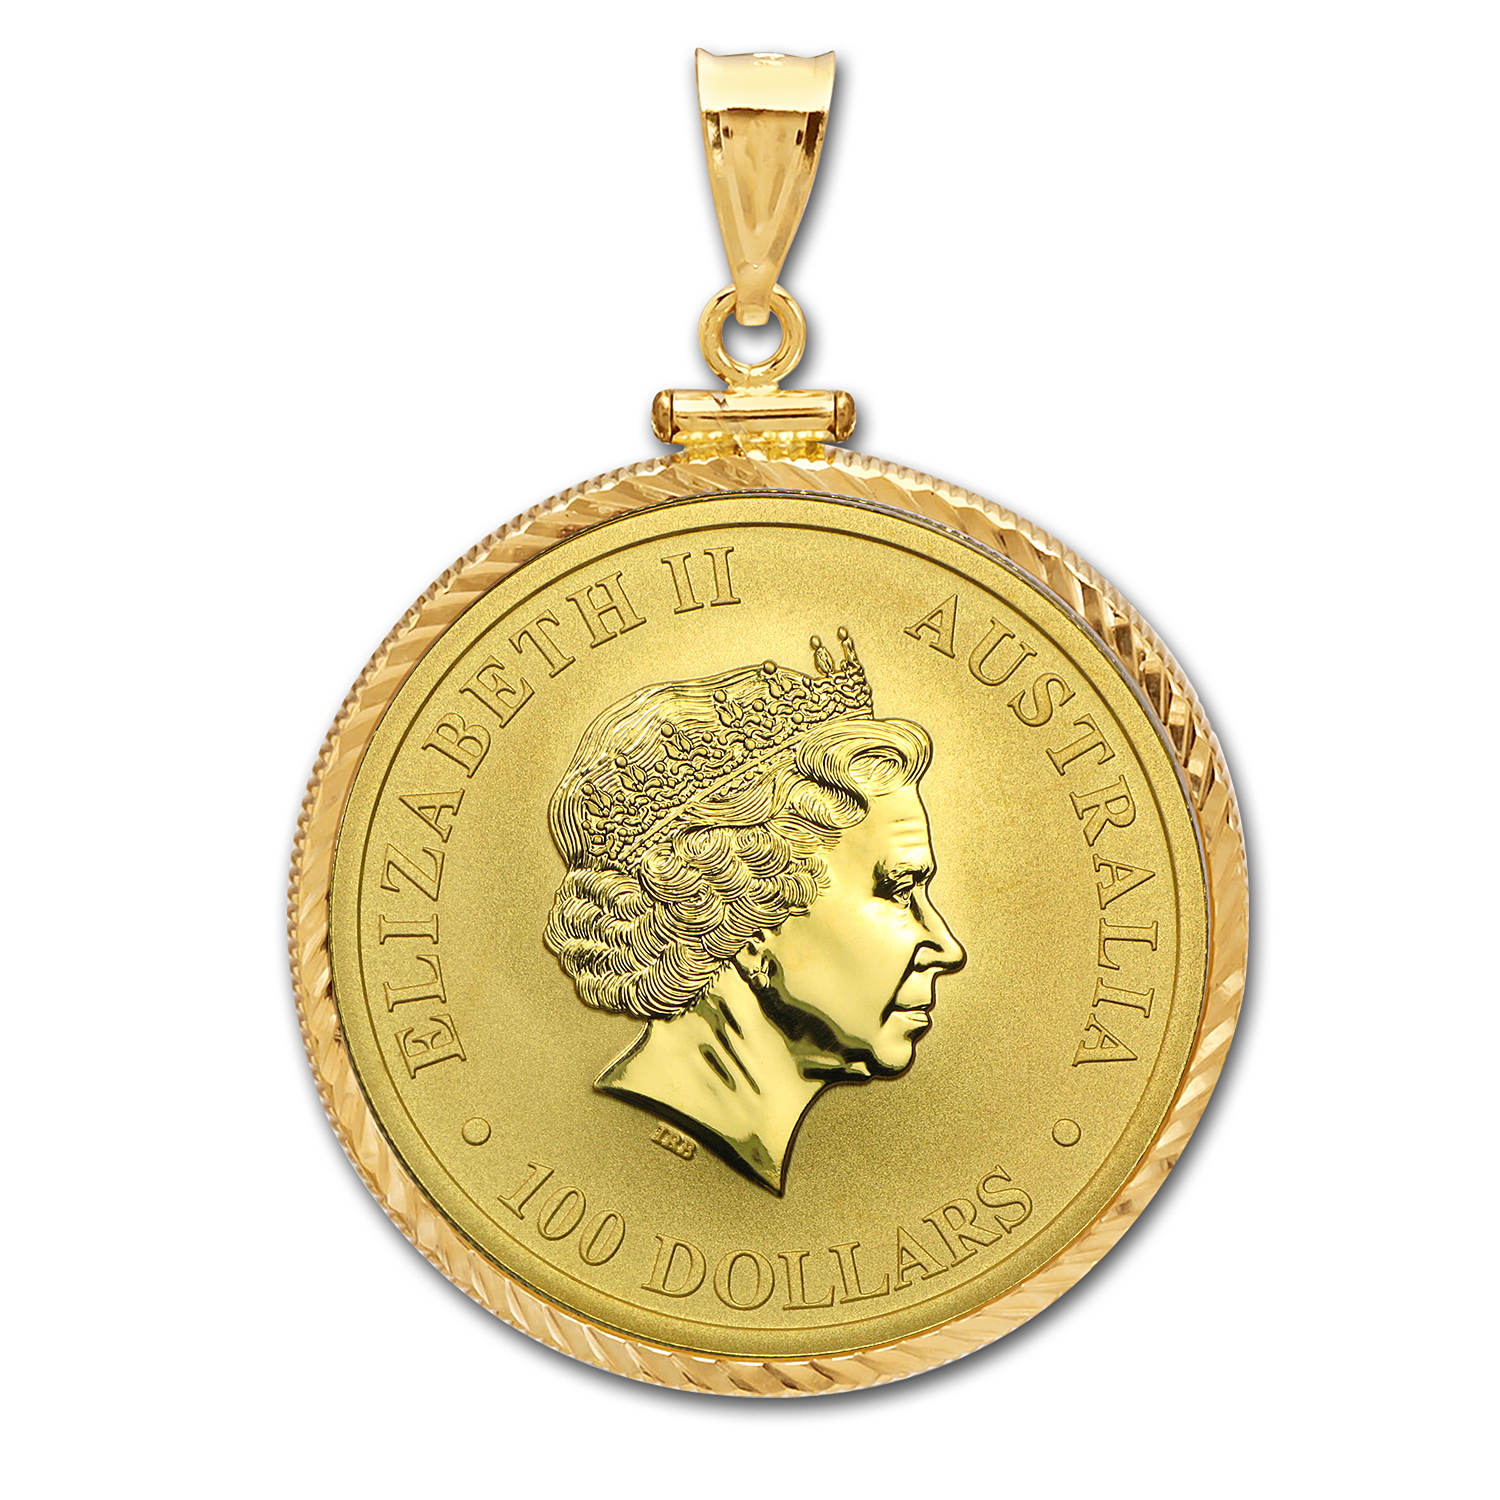 2016 1 oz Gold Kangaroo Pendant (Diamond-ScrewTop Bezel)